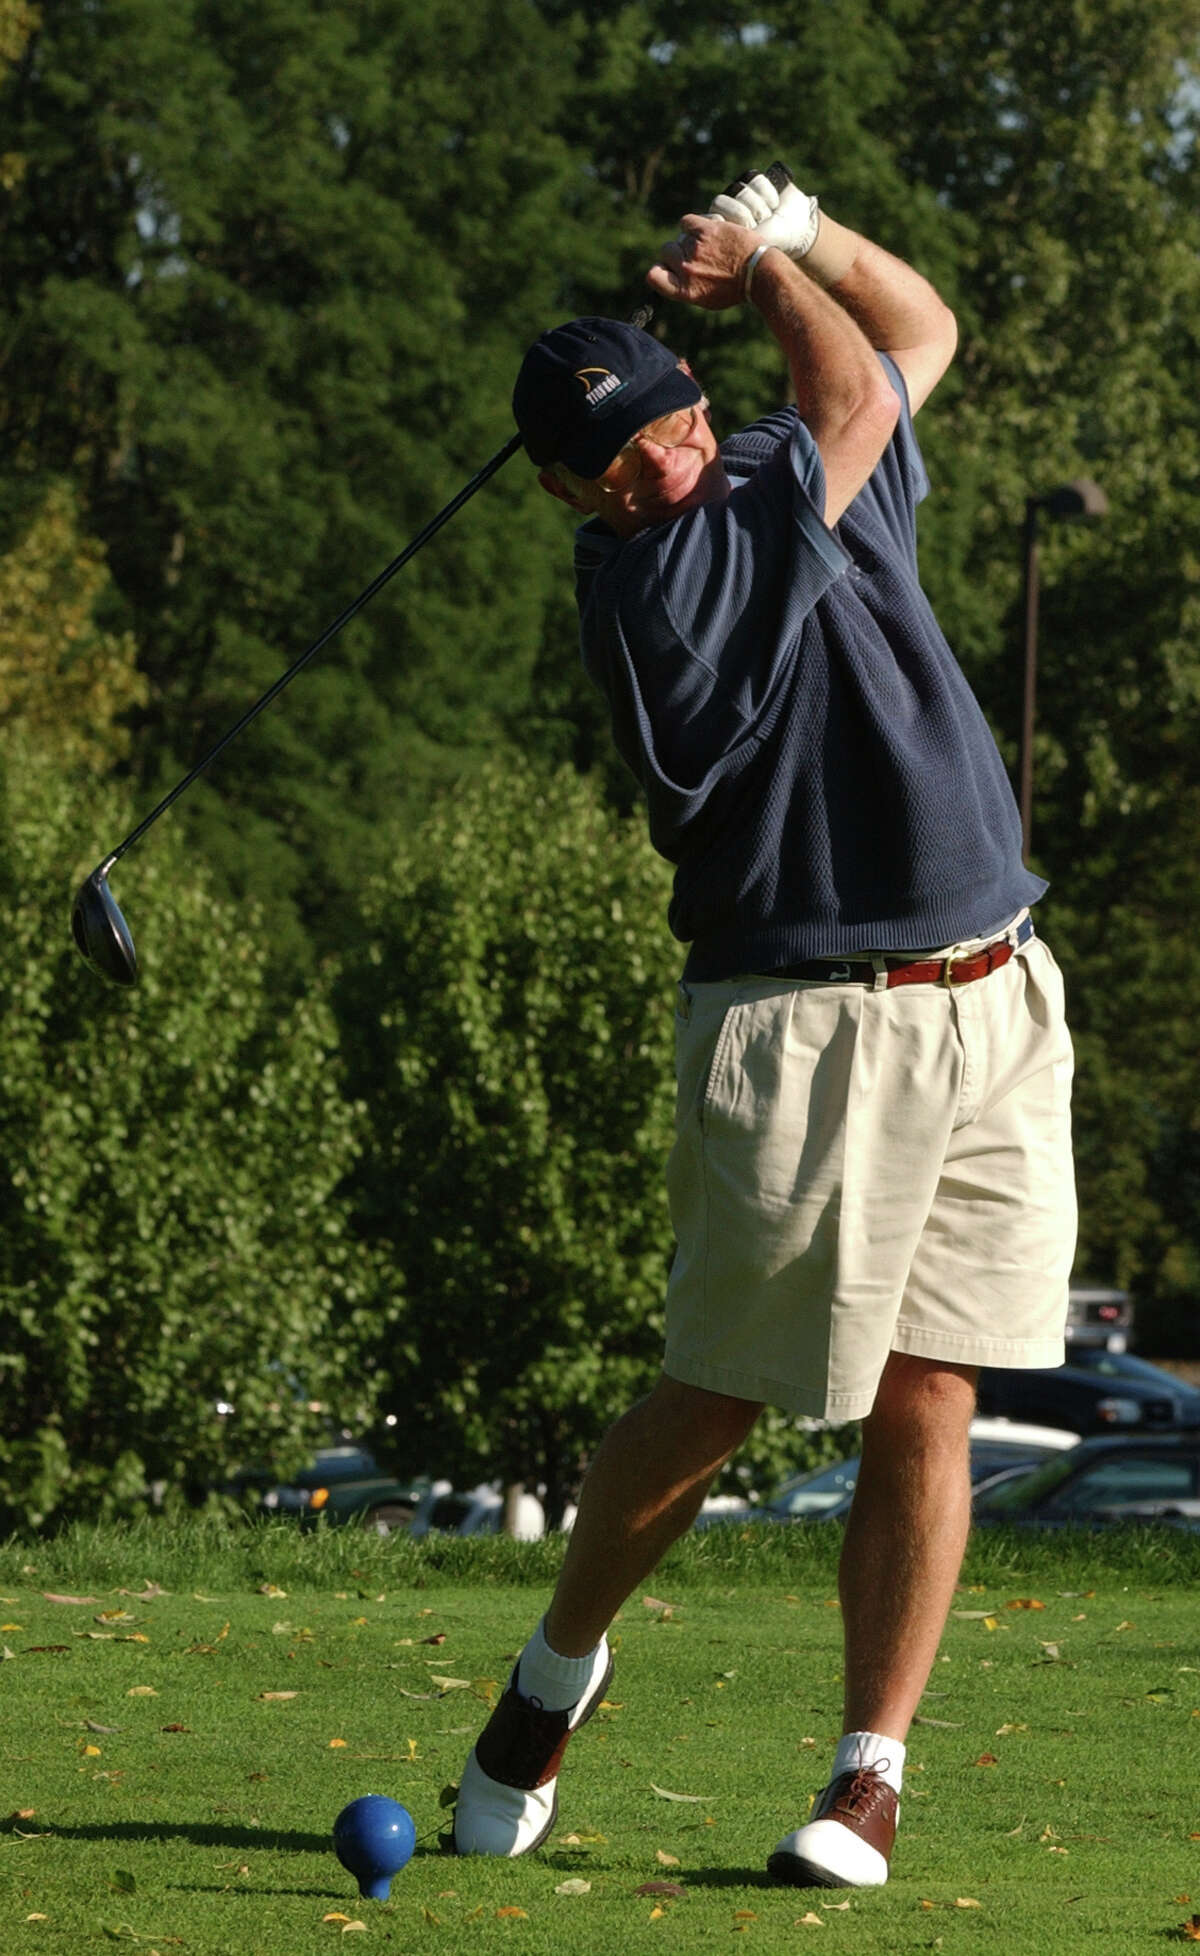 TIMES UNION STAFF PHOTO BY SKIP DICKSTEIN - Charlie Murphy of Wolferts Roost tees off at the first tee of the New York State Golf Association Senior Amateur held at the Normanside CC in Delmar New York September 16, 2003.